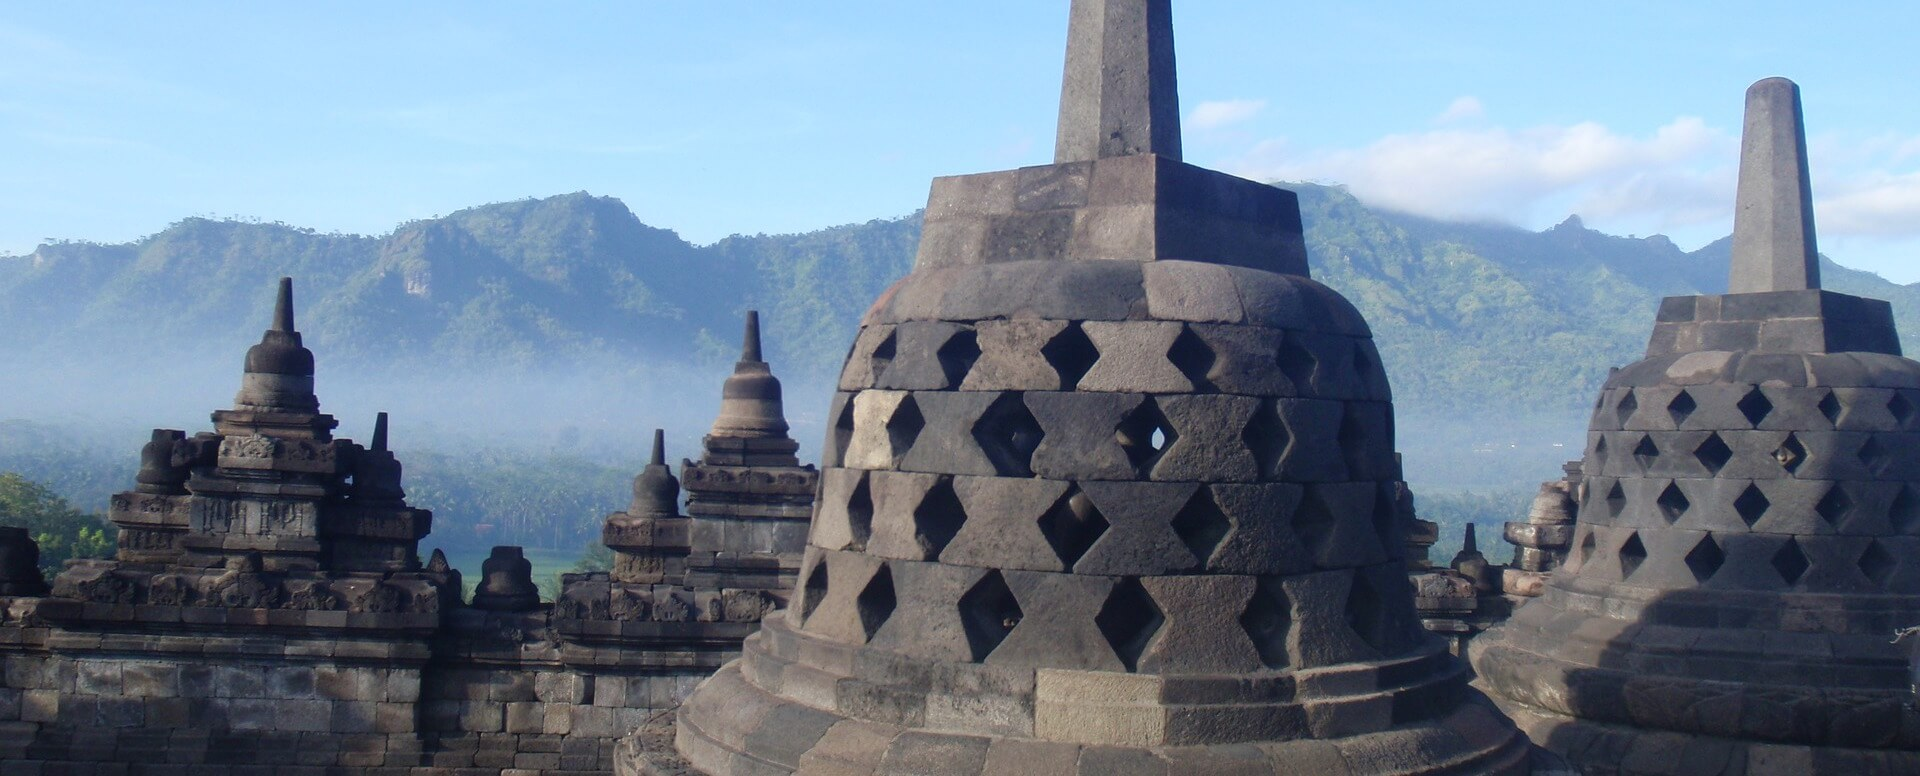 Visiting the temples - Indonesia